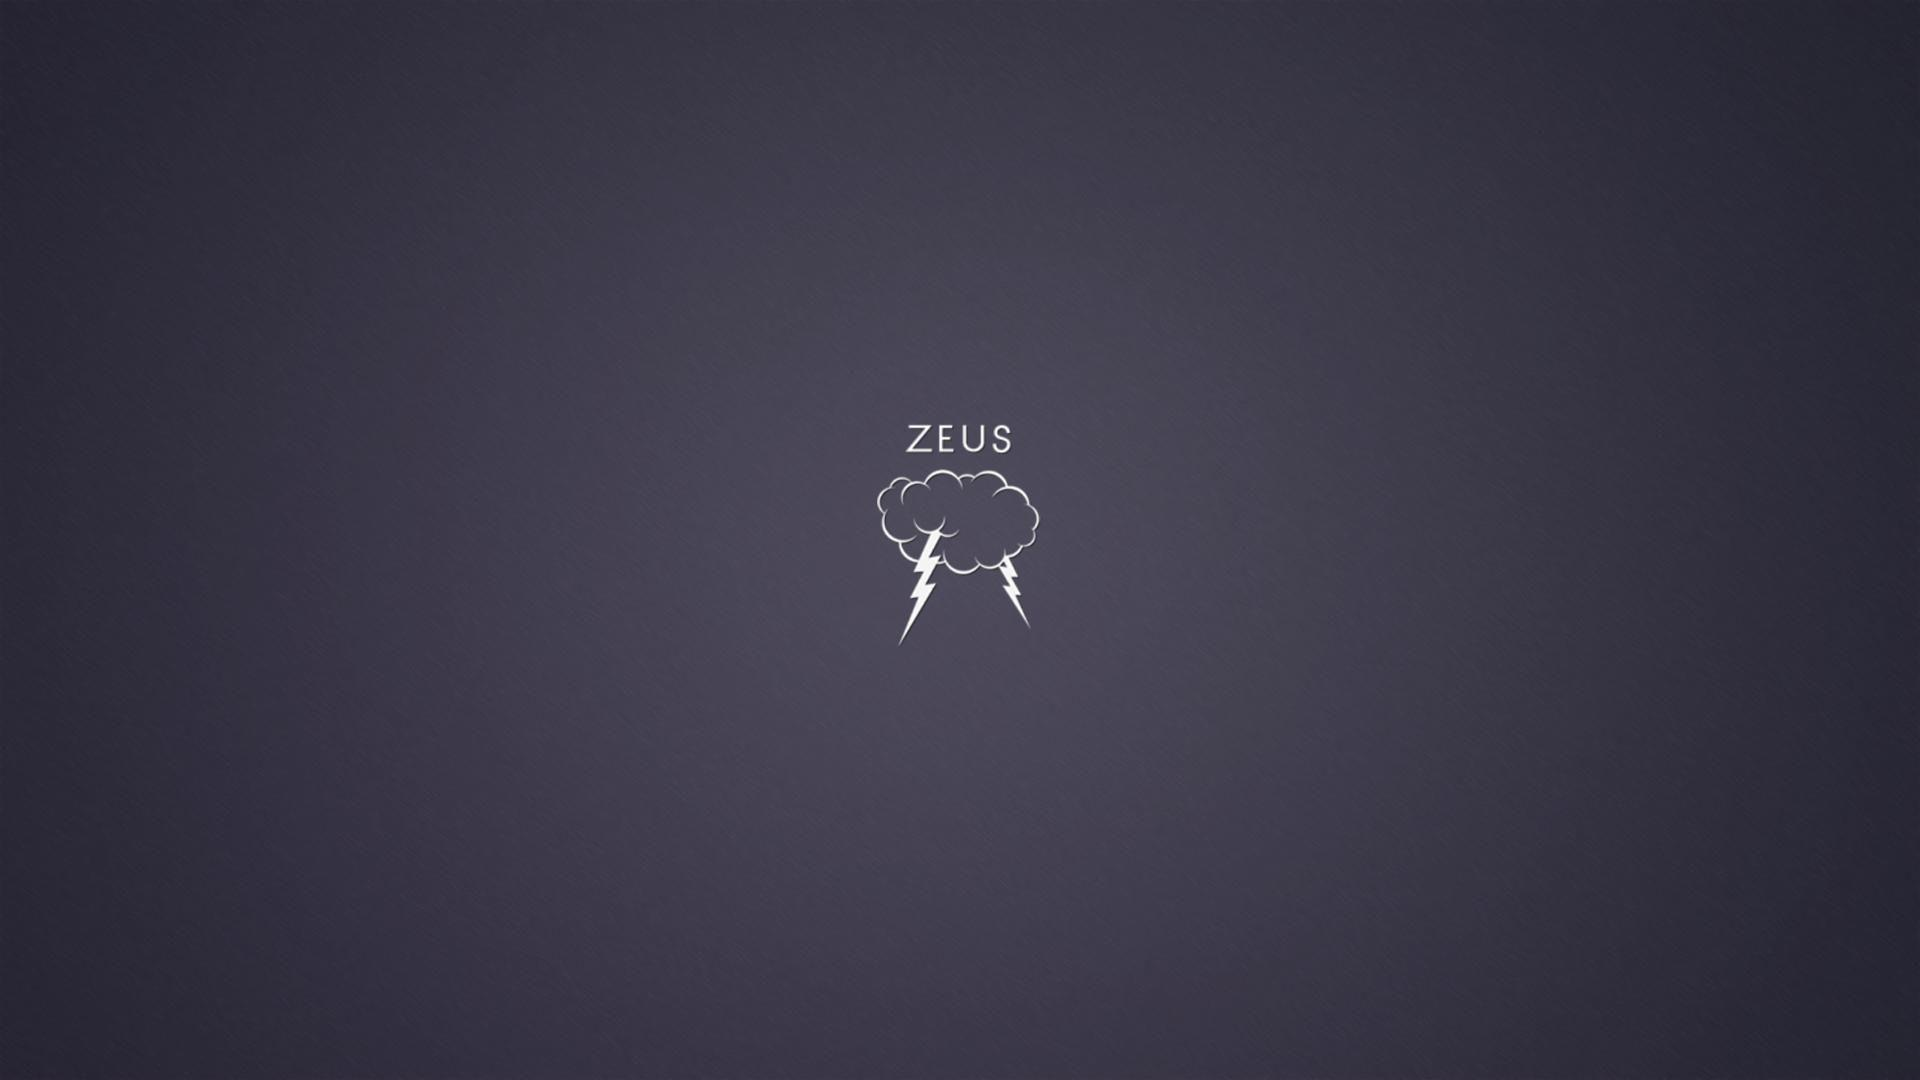 Zeus Wallpapers Wallpaper Cave